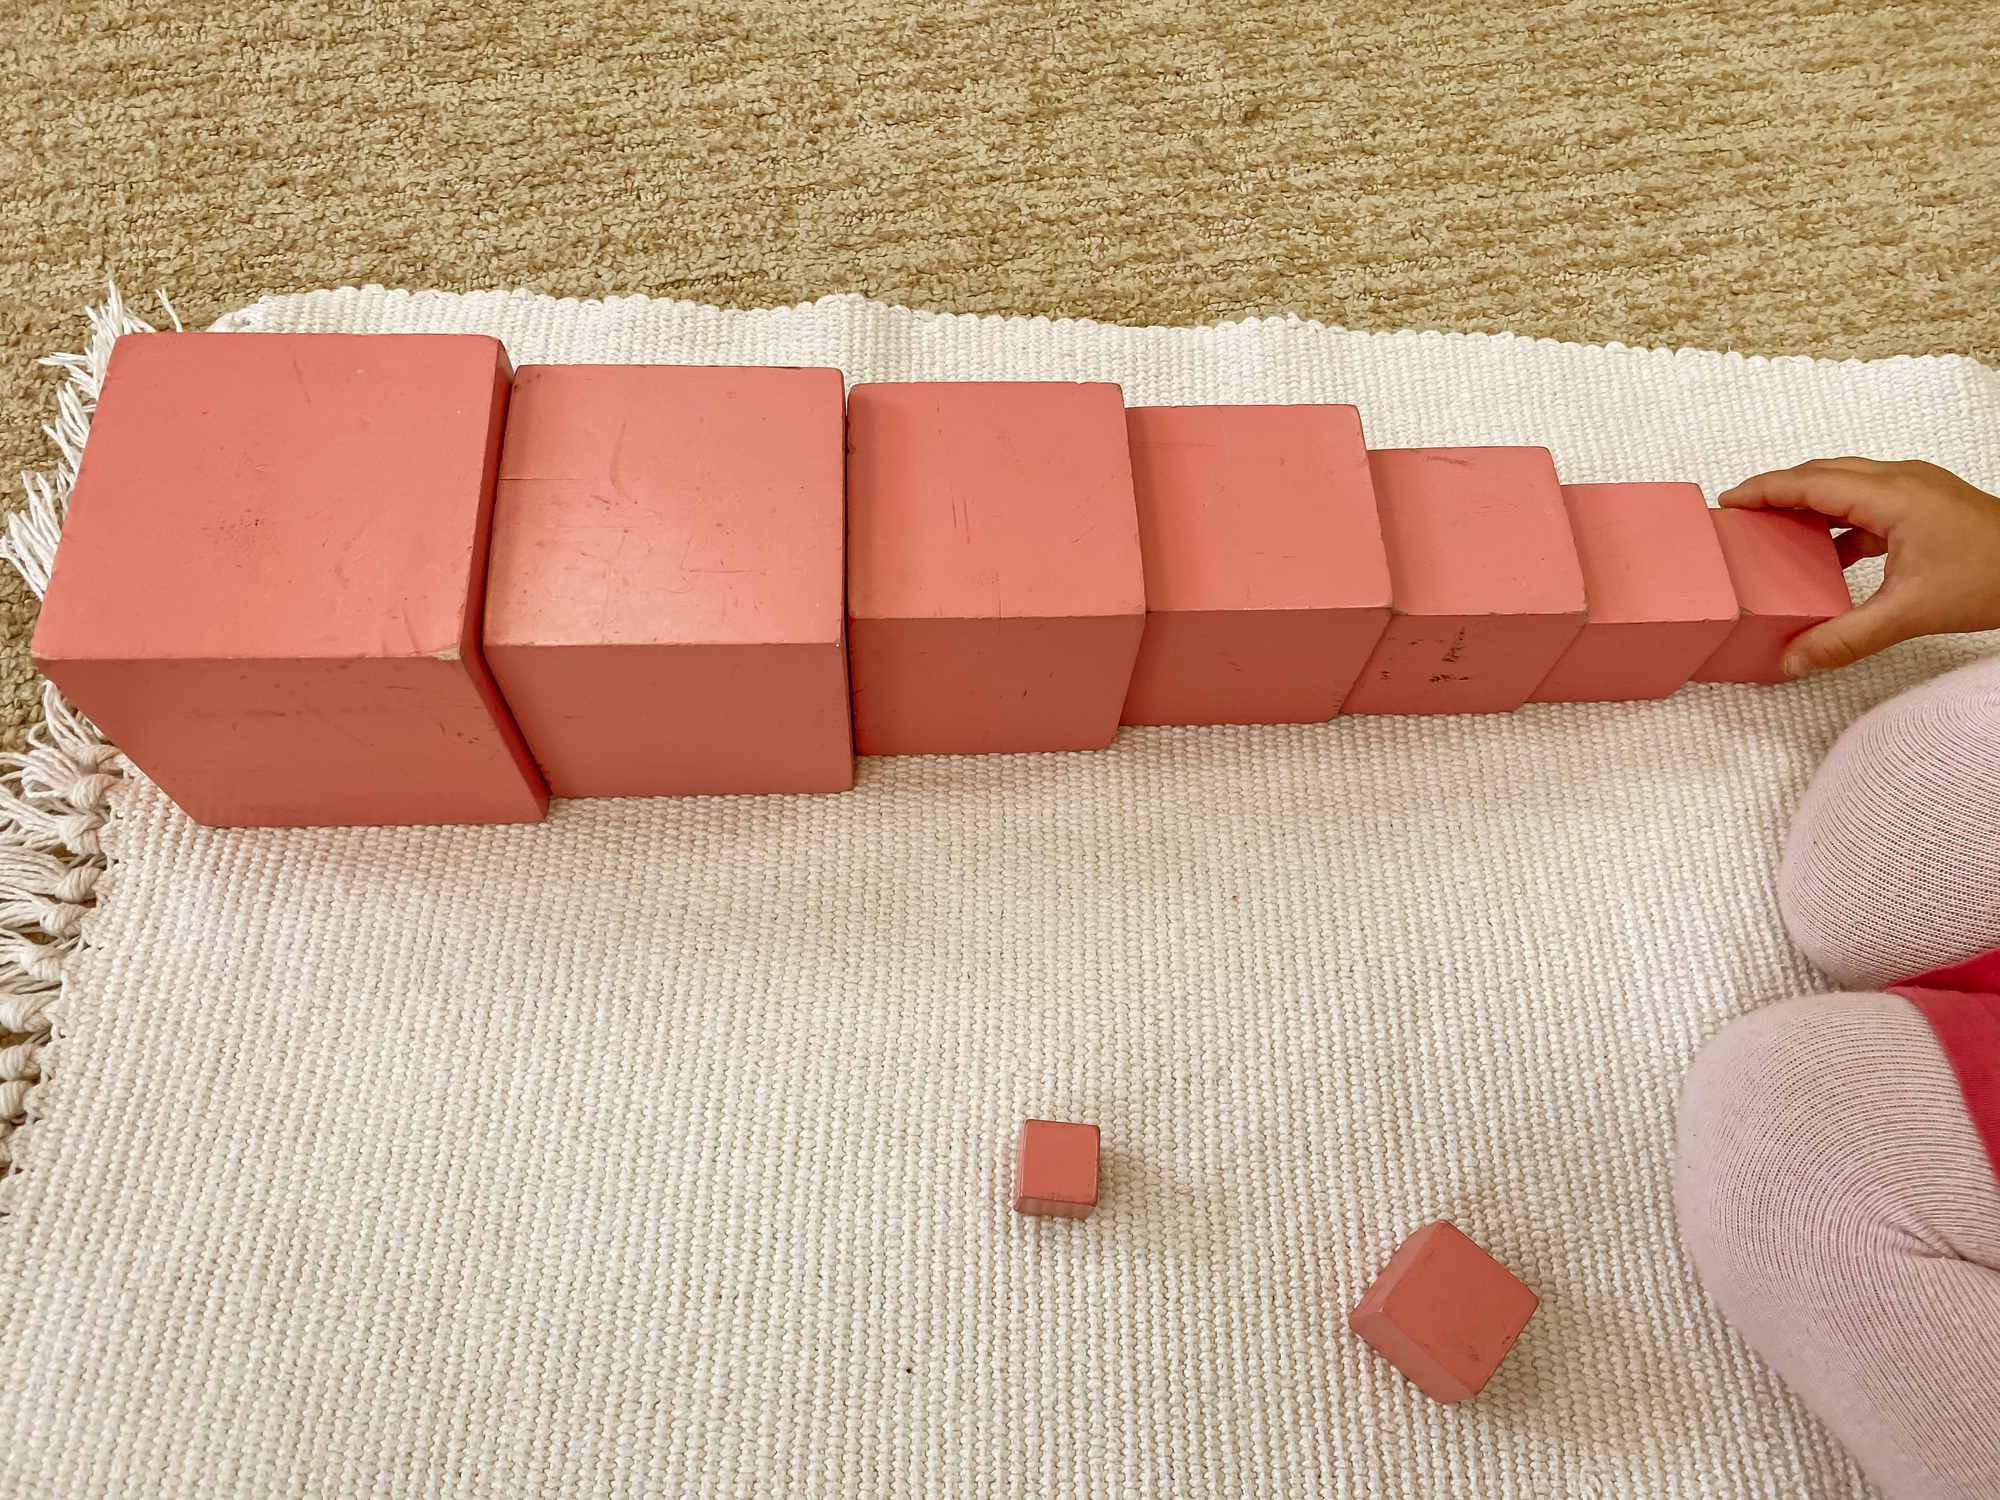 Montessori material sensorics touch pink tower